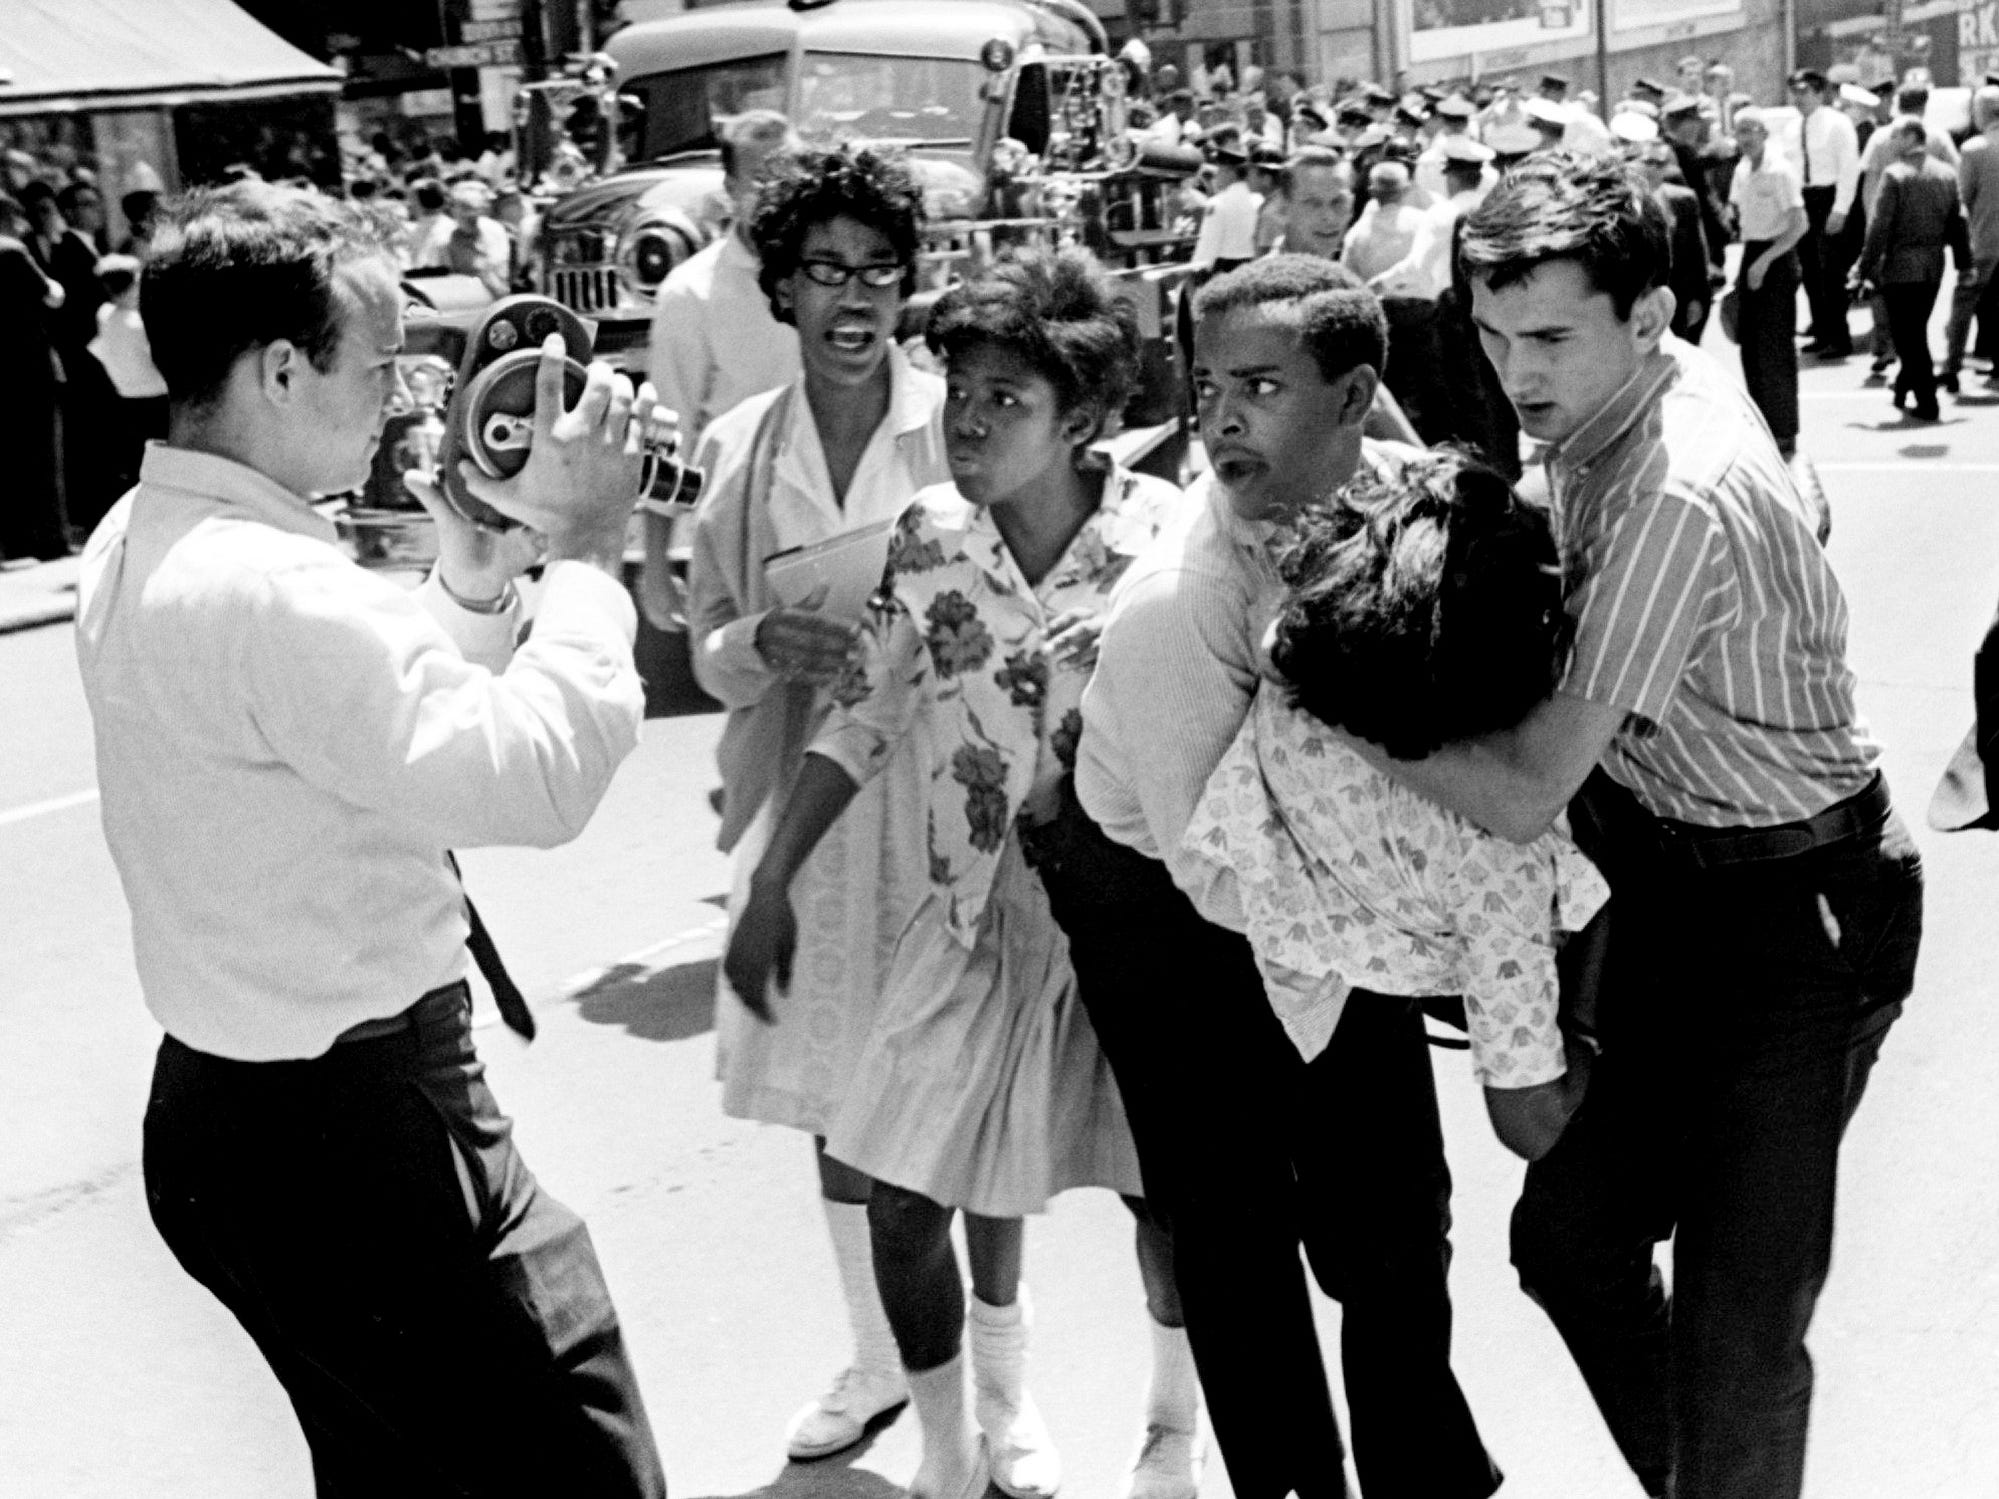 Fellow civil rights demonstrators carry an injured marcher after violence erupted when club-swinging police officers surged through the marchers on Church Street on April 28, 1964.